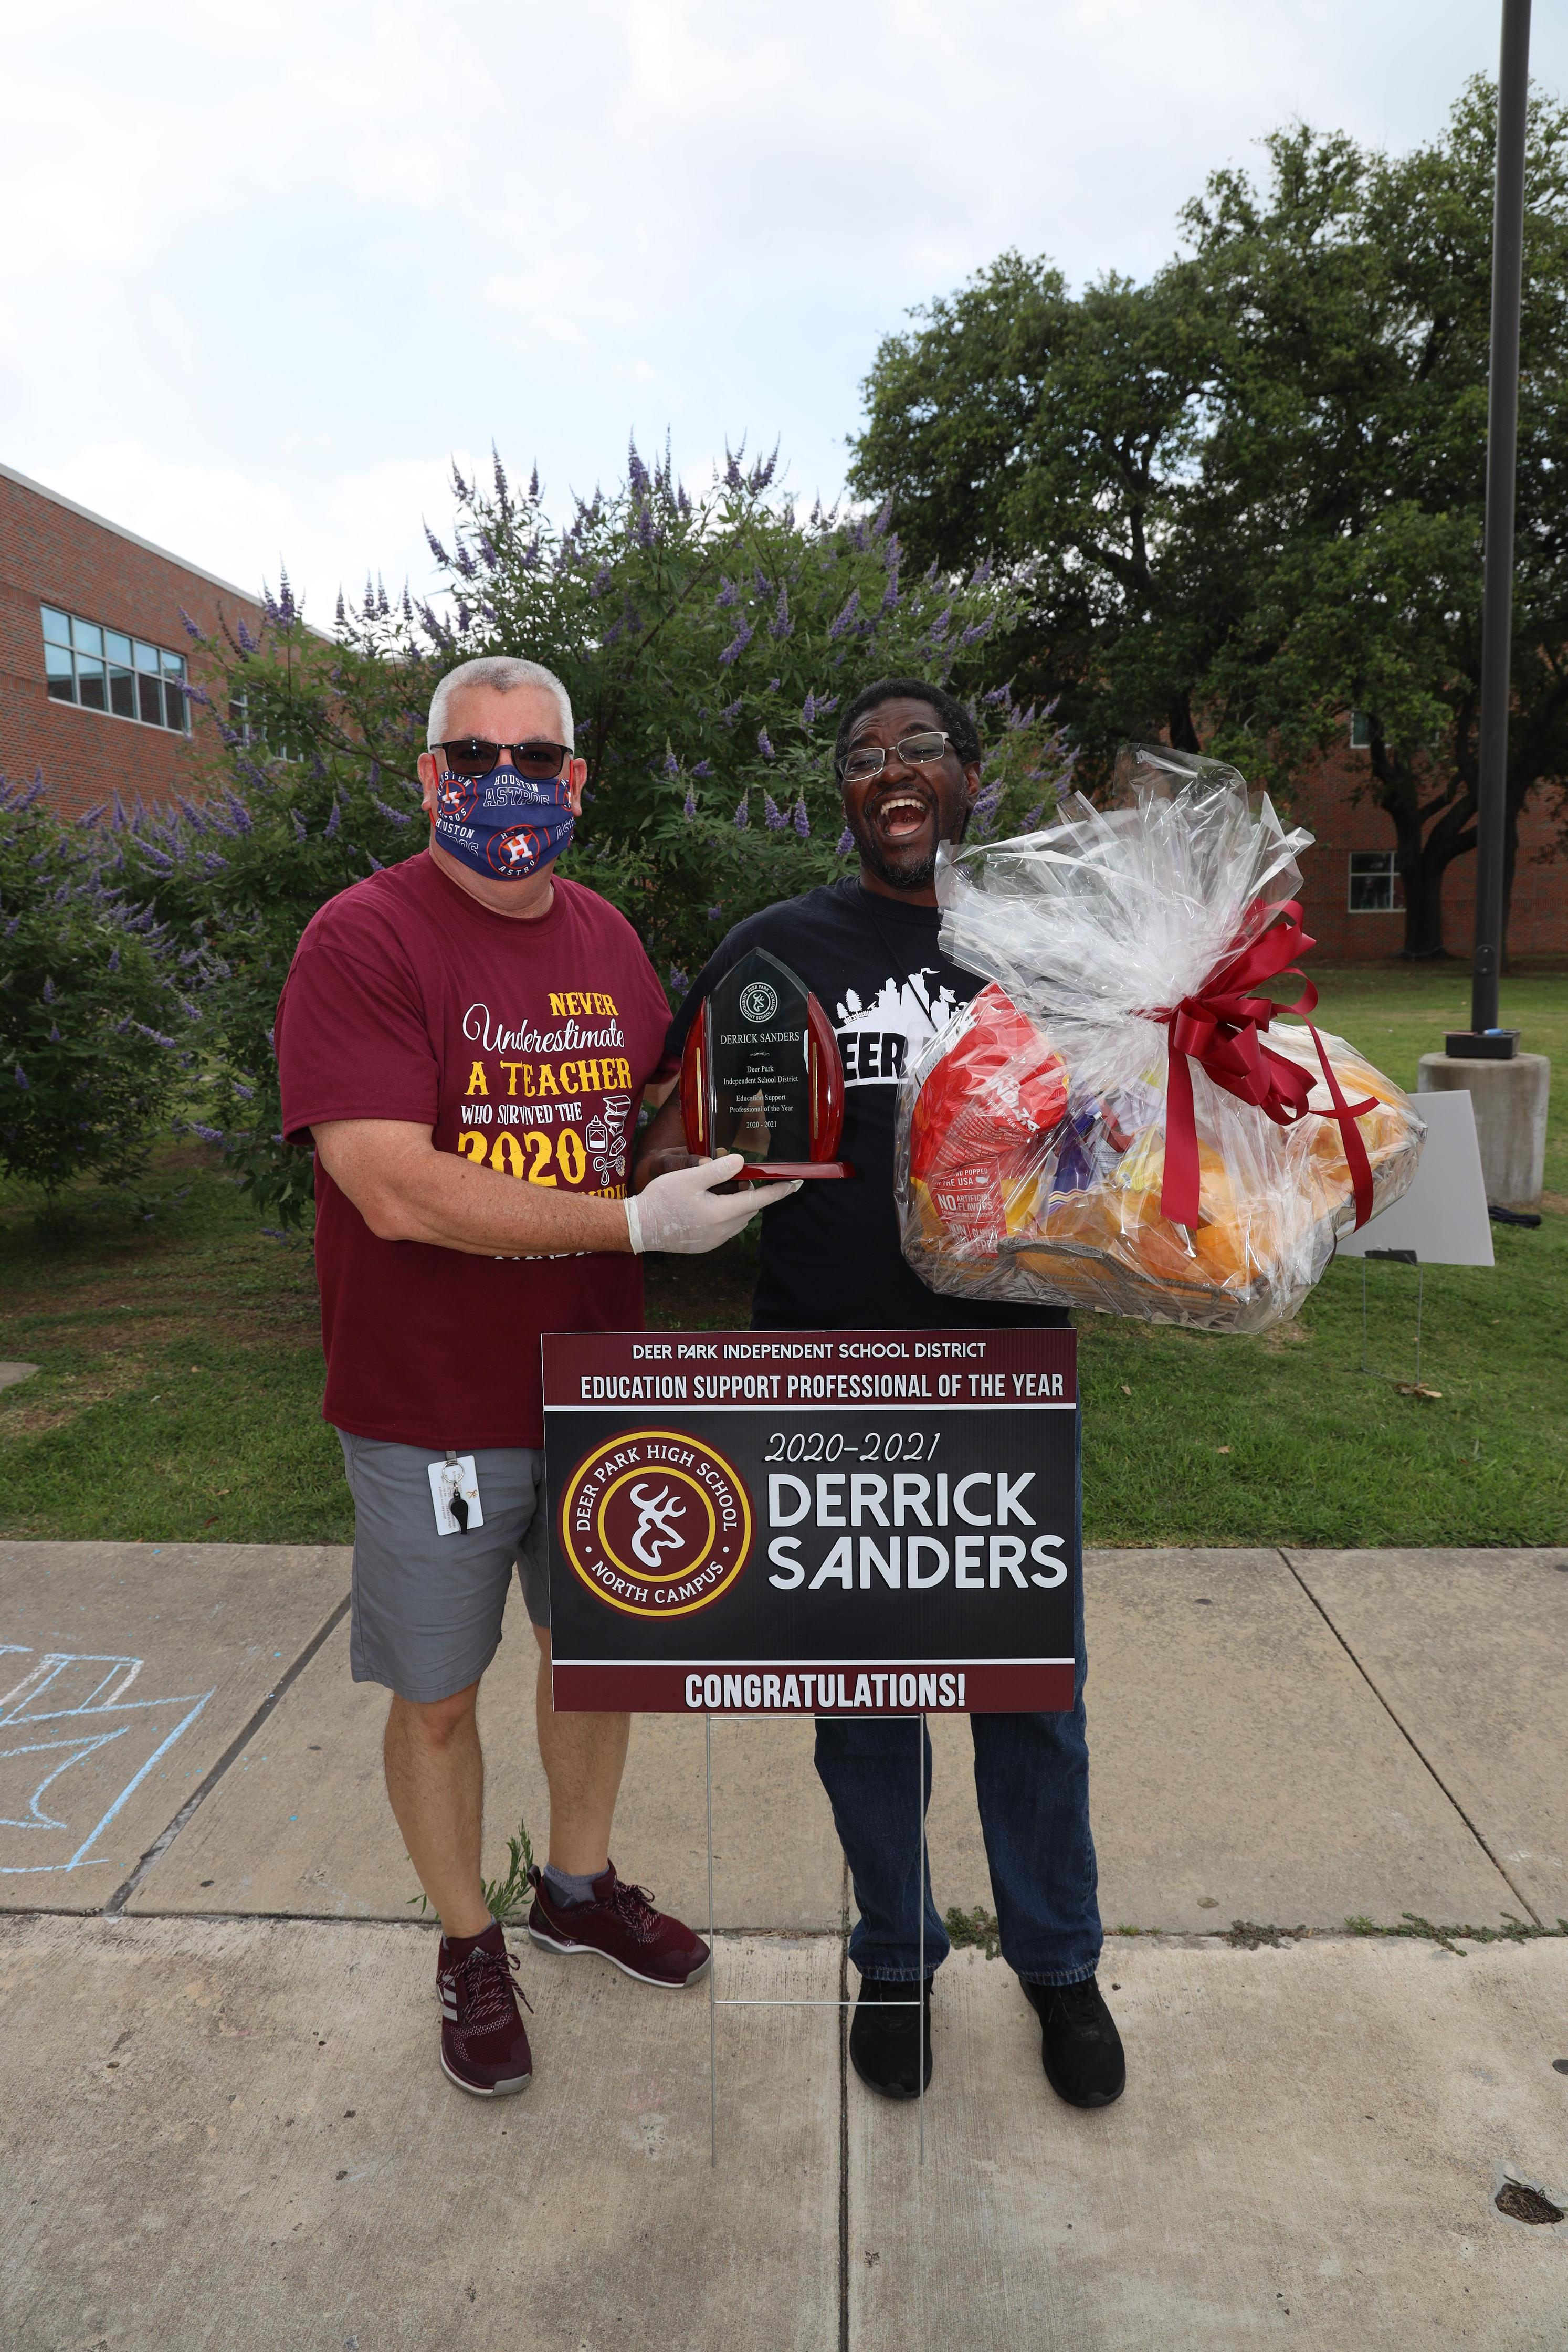 Presenting the support professional award to Derrick Sanders